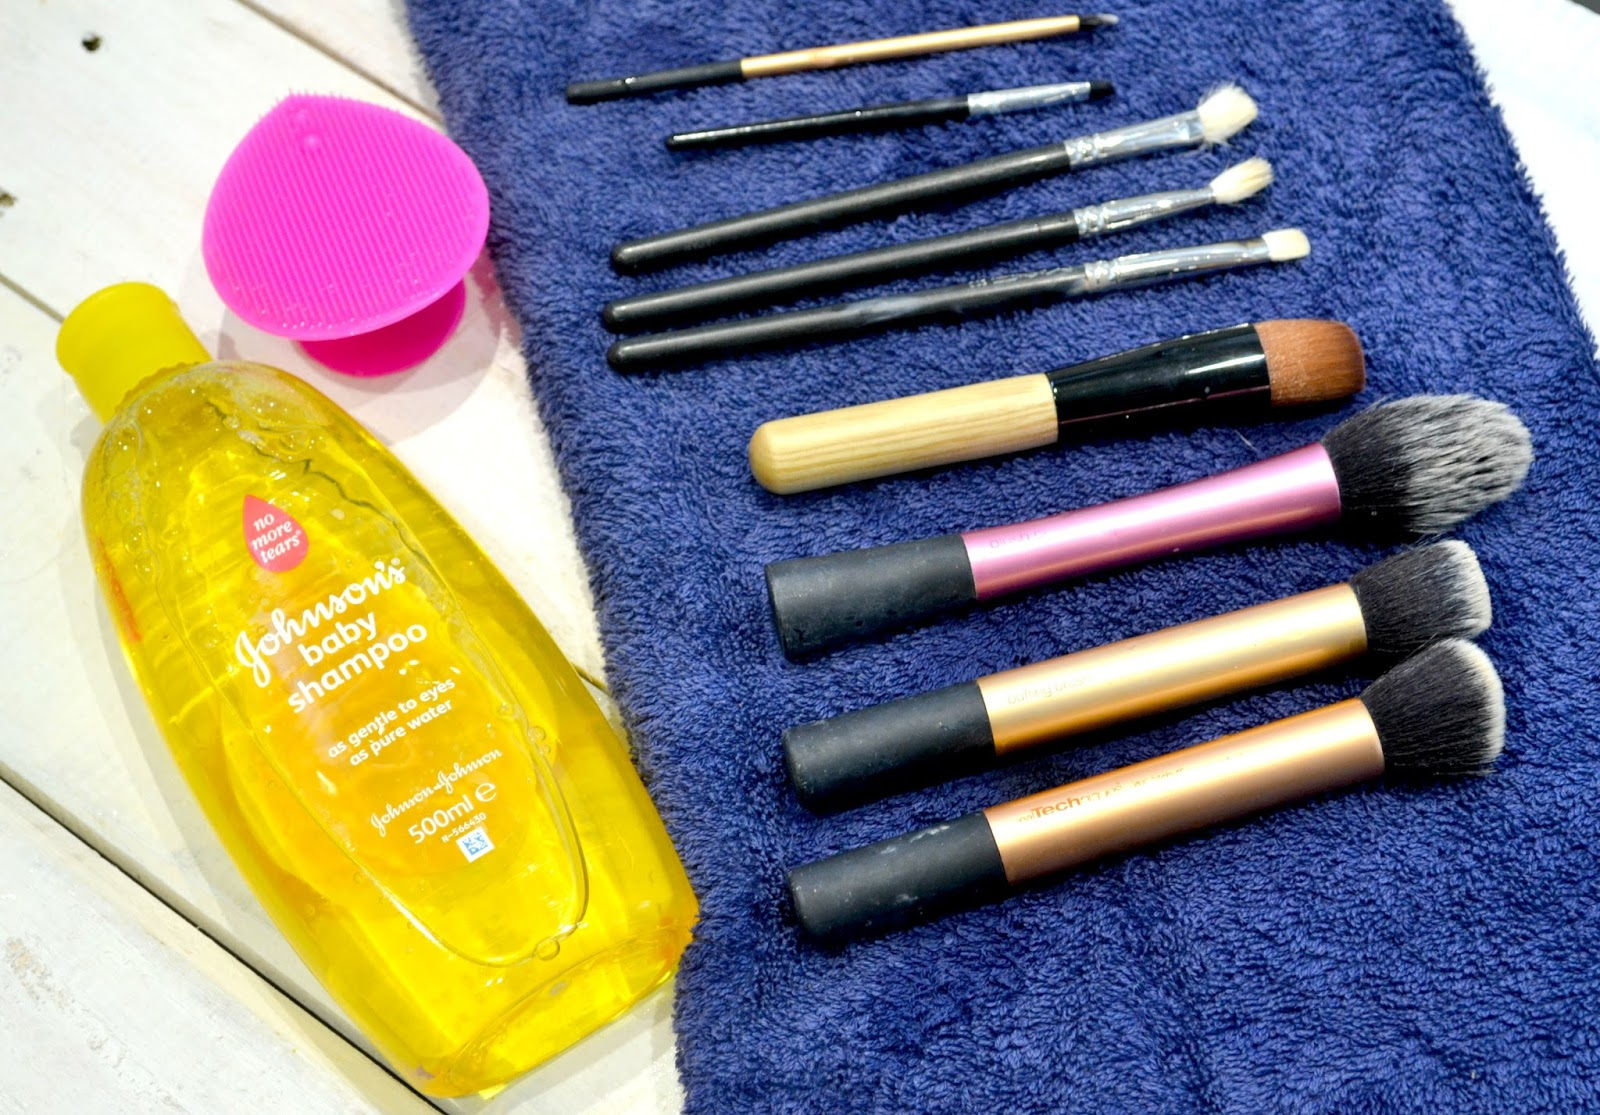 How I clean my make up brushes